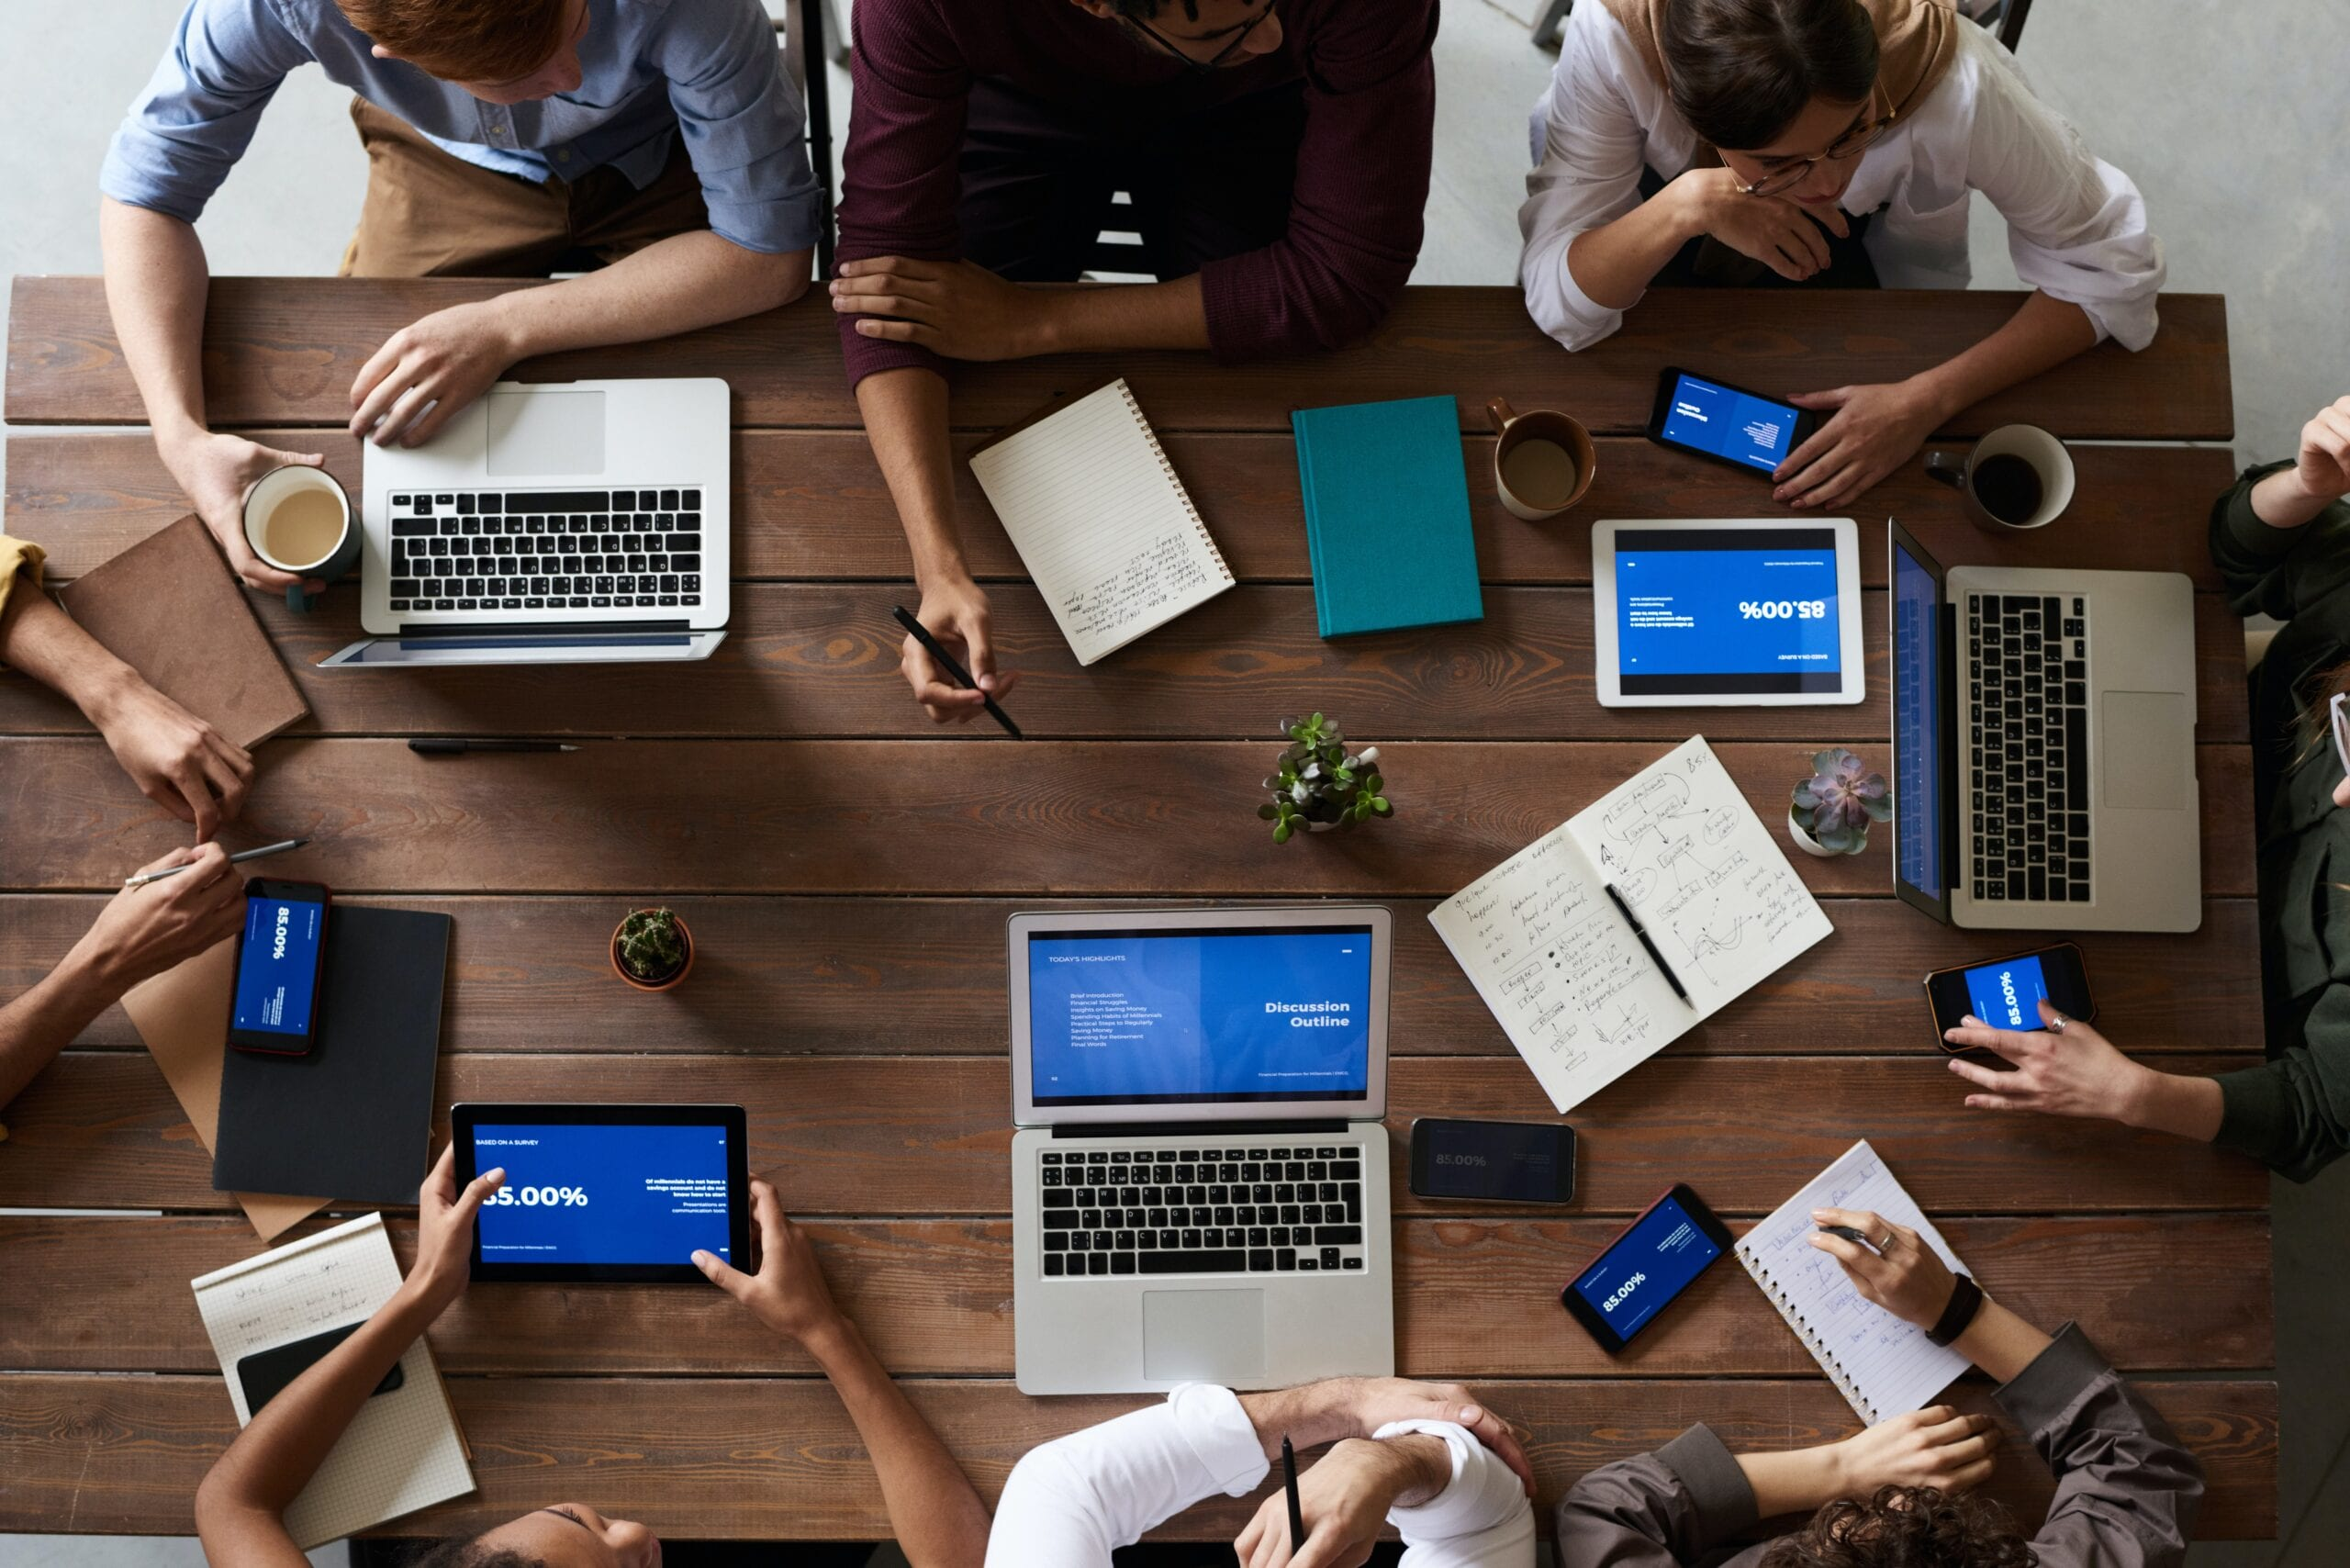 group of people in working desk